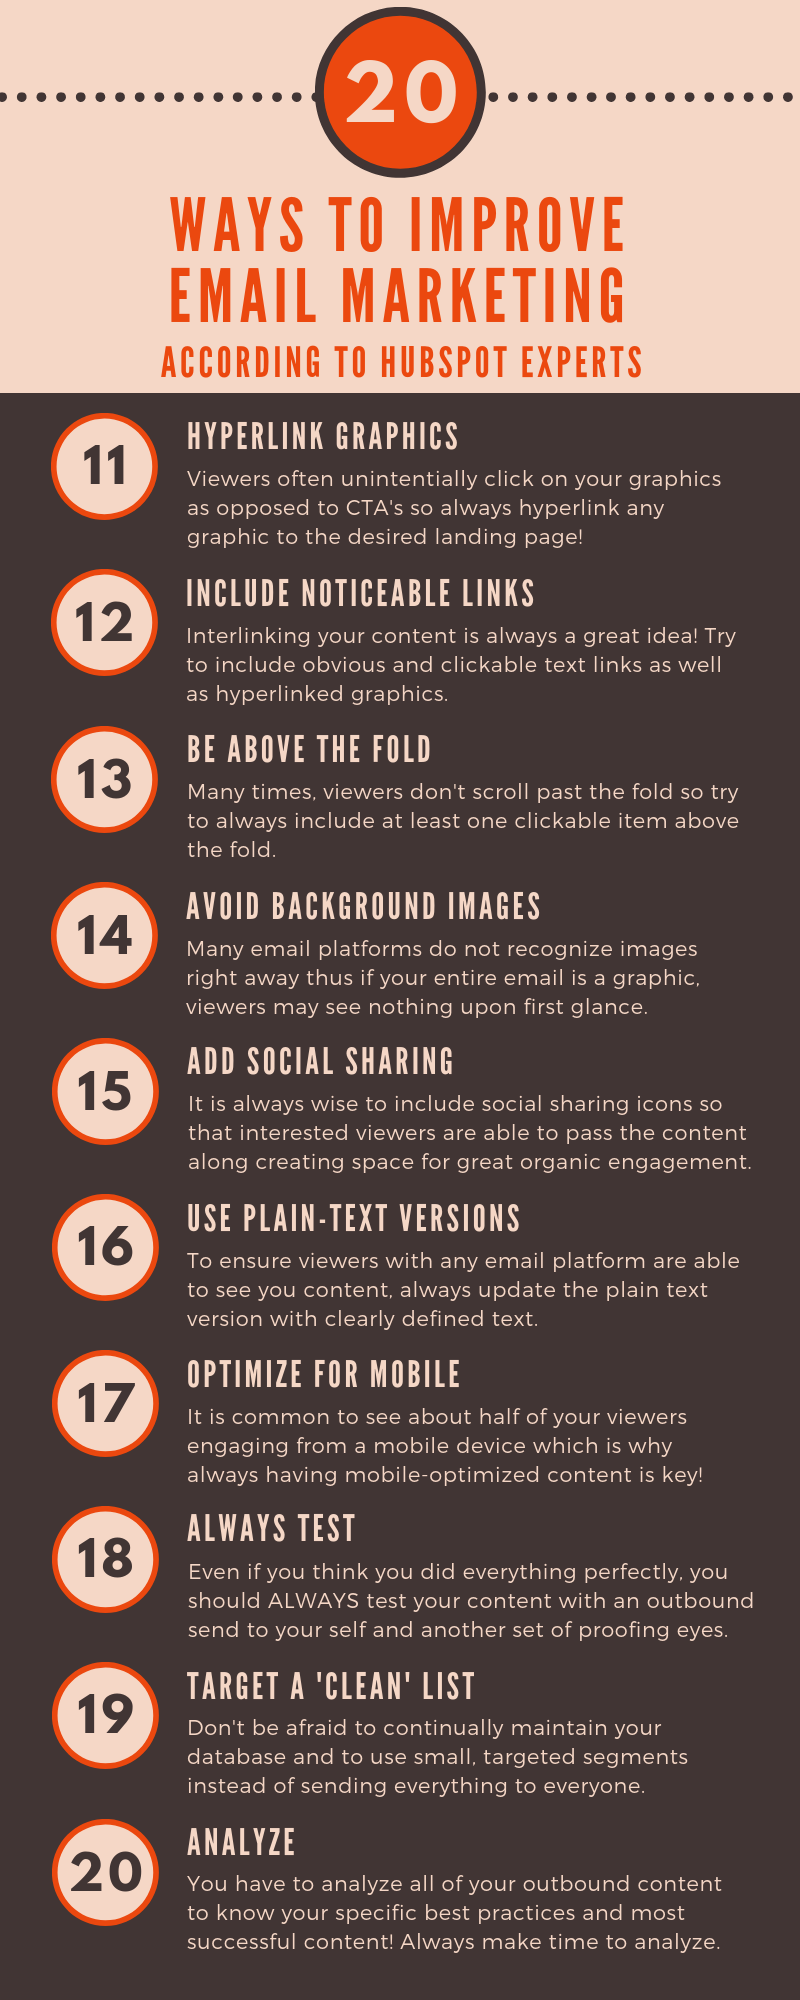 Improving Your Email Marketing with these 20 Tips